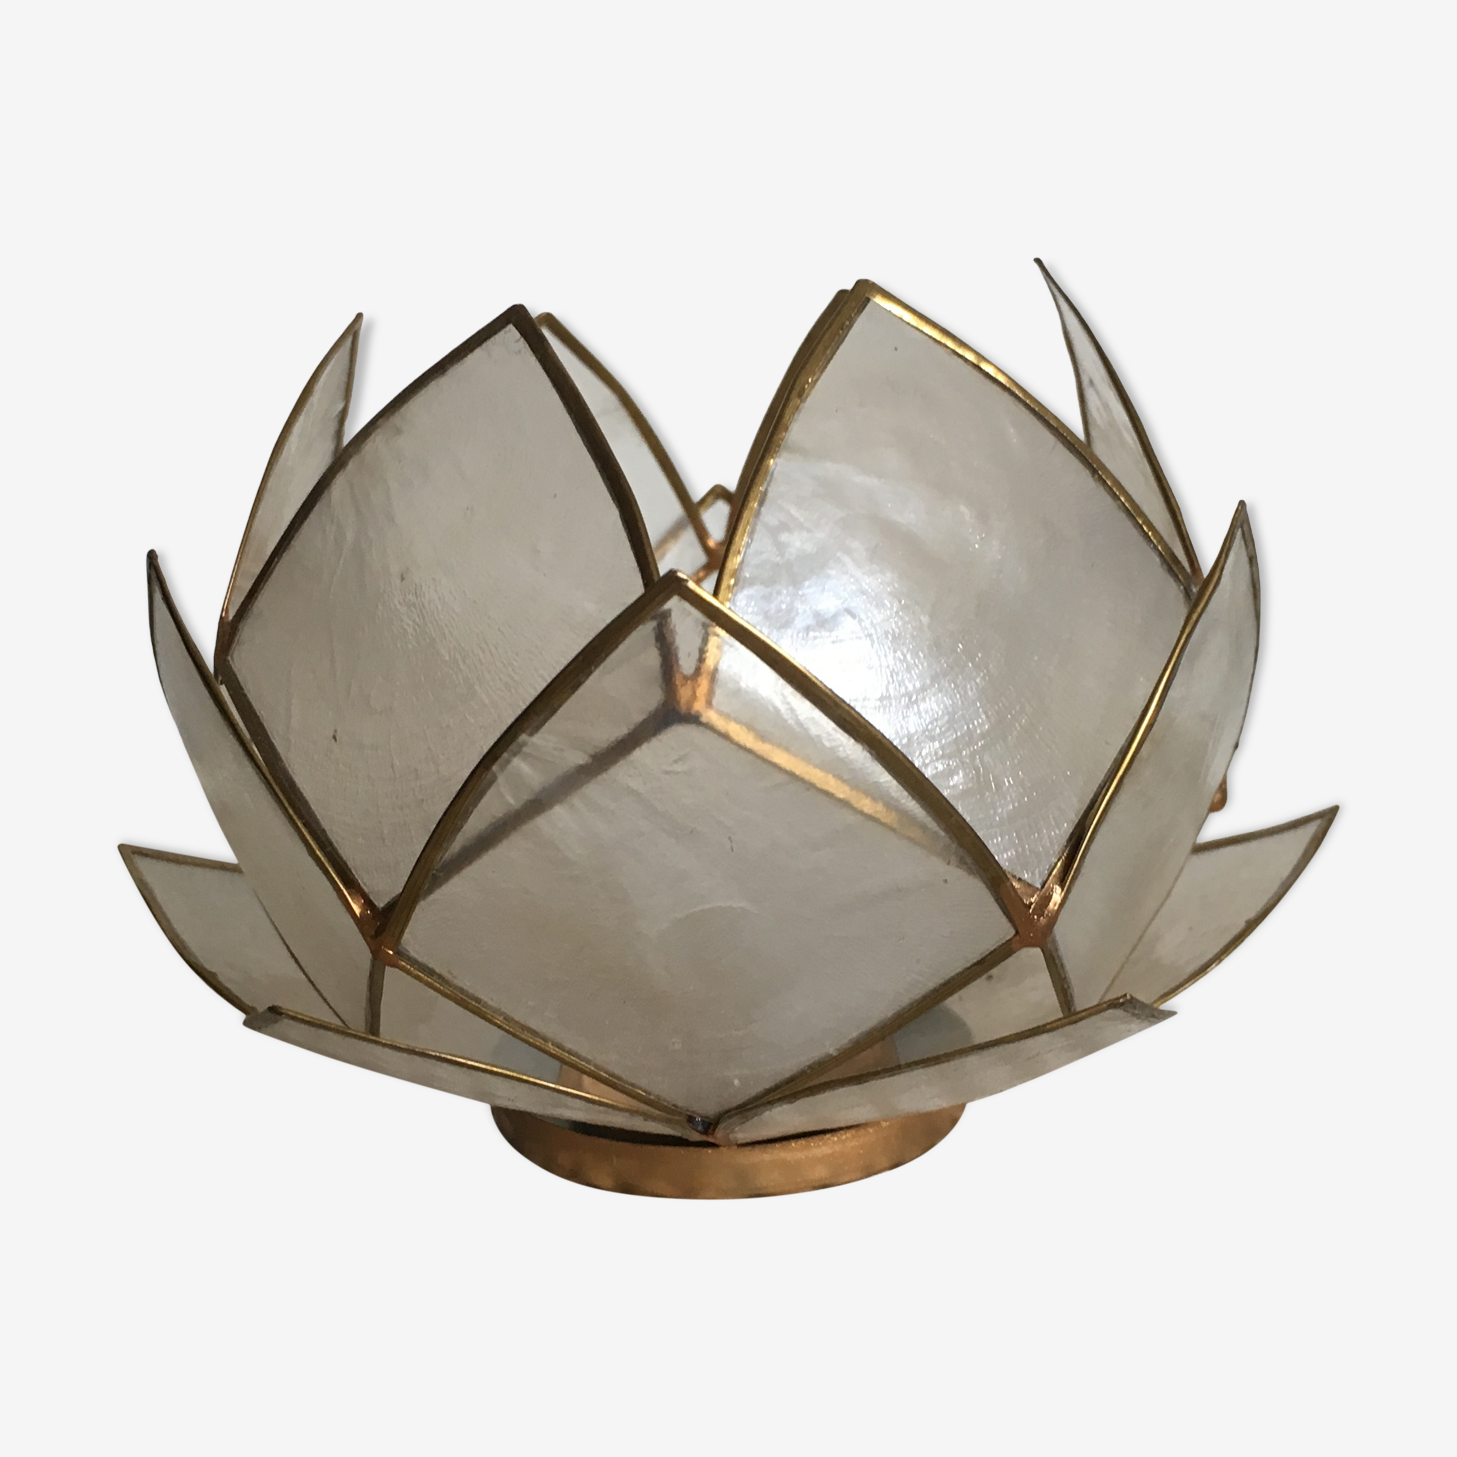 Candlestick or candle holder in nacre flower shape